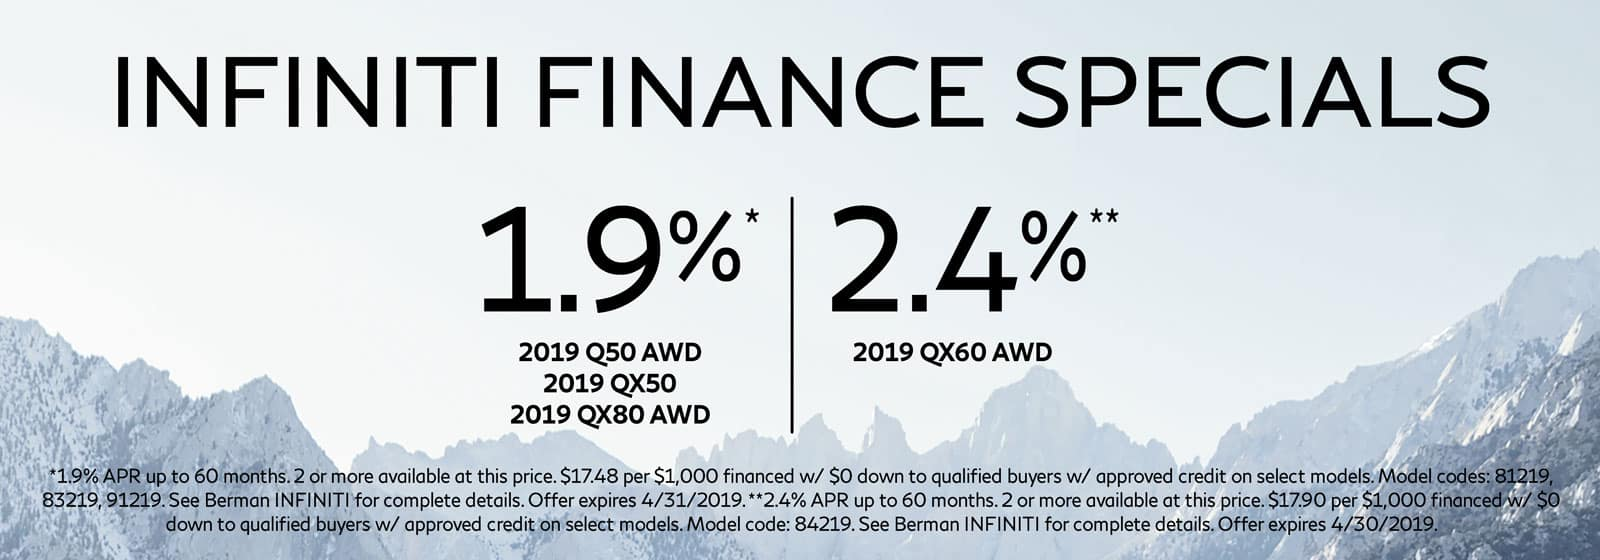 Finance Specials at Berman INFINITI Chicago